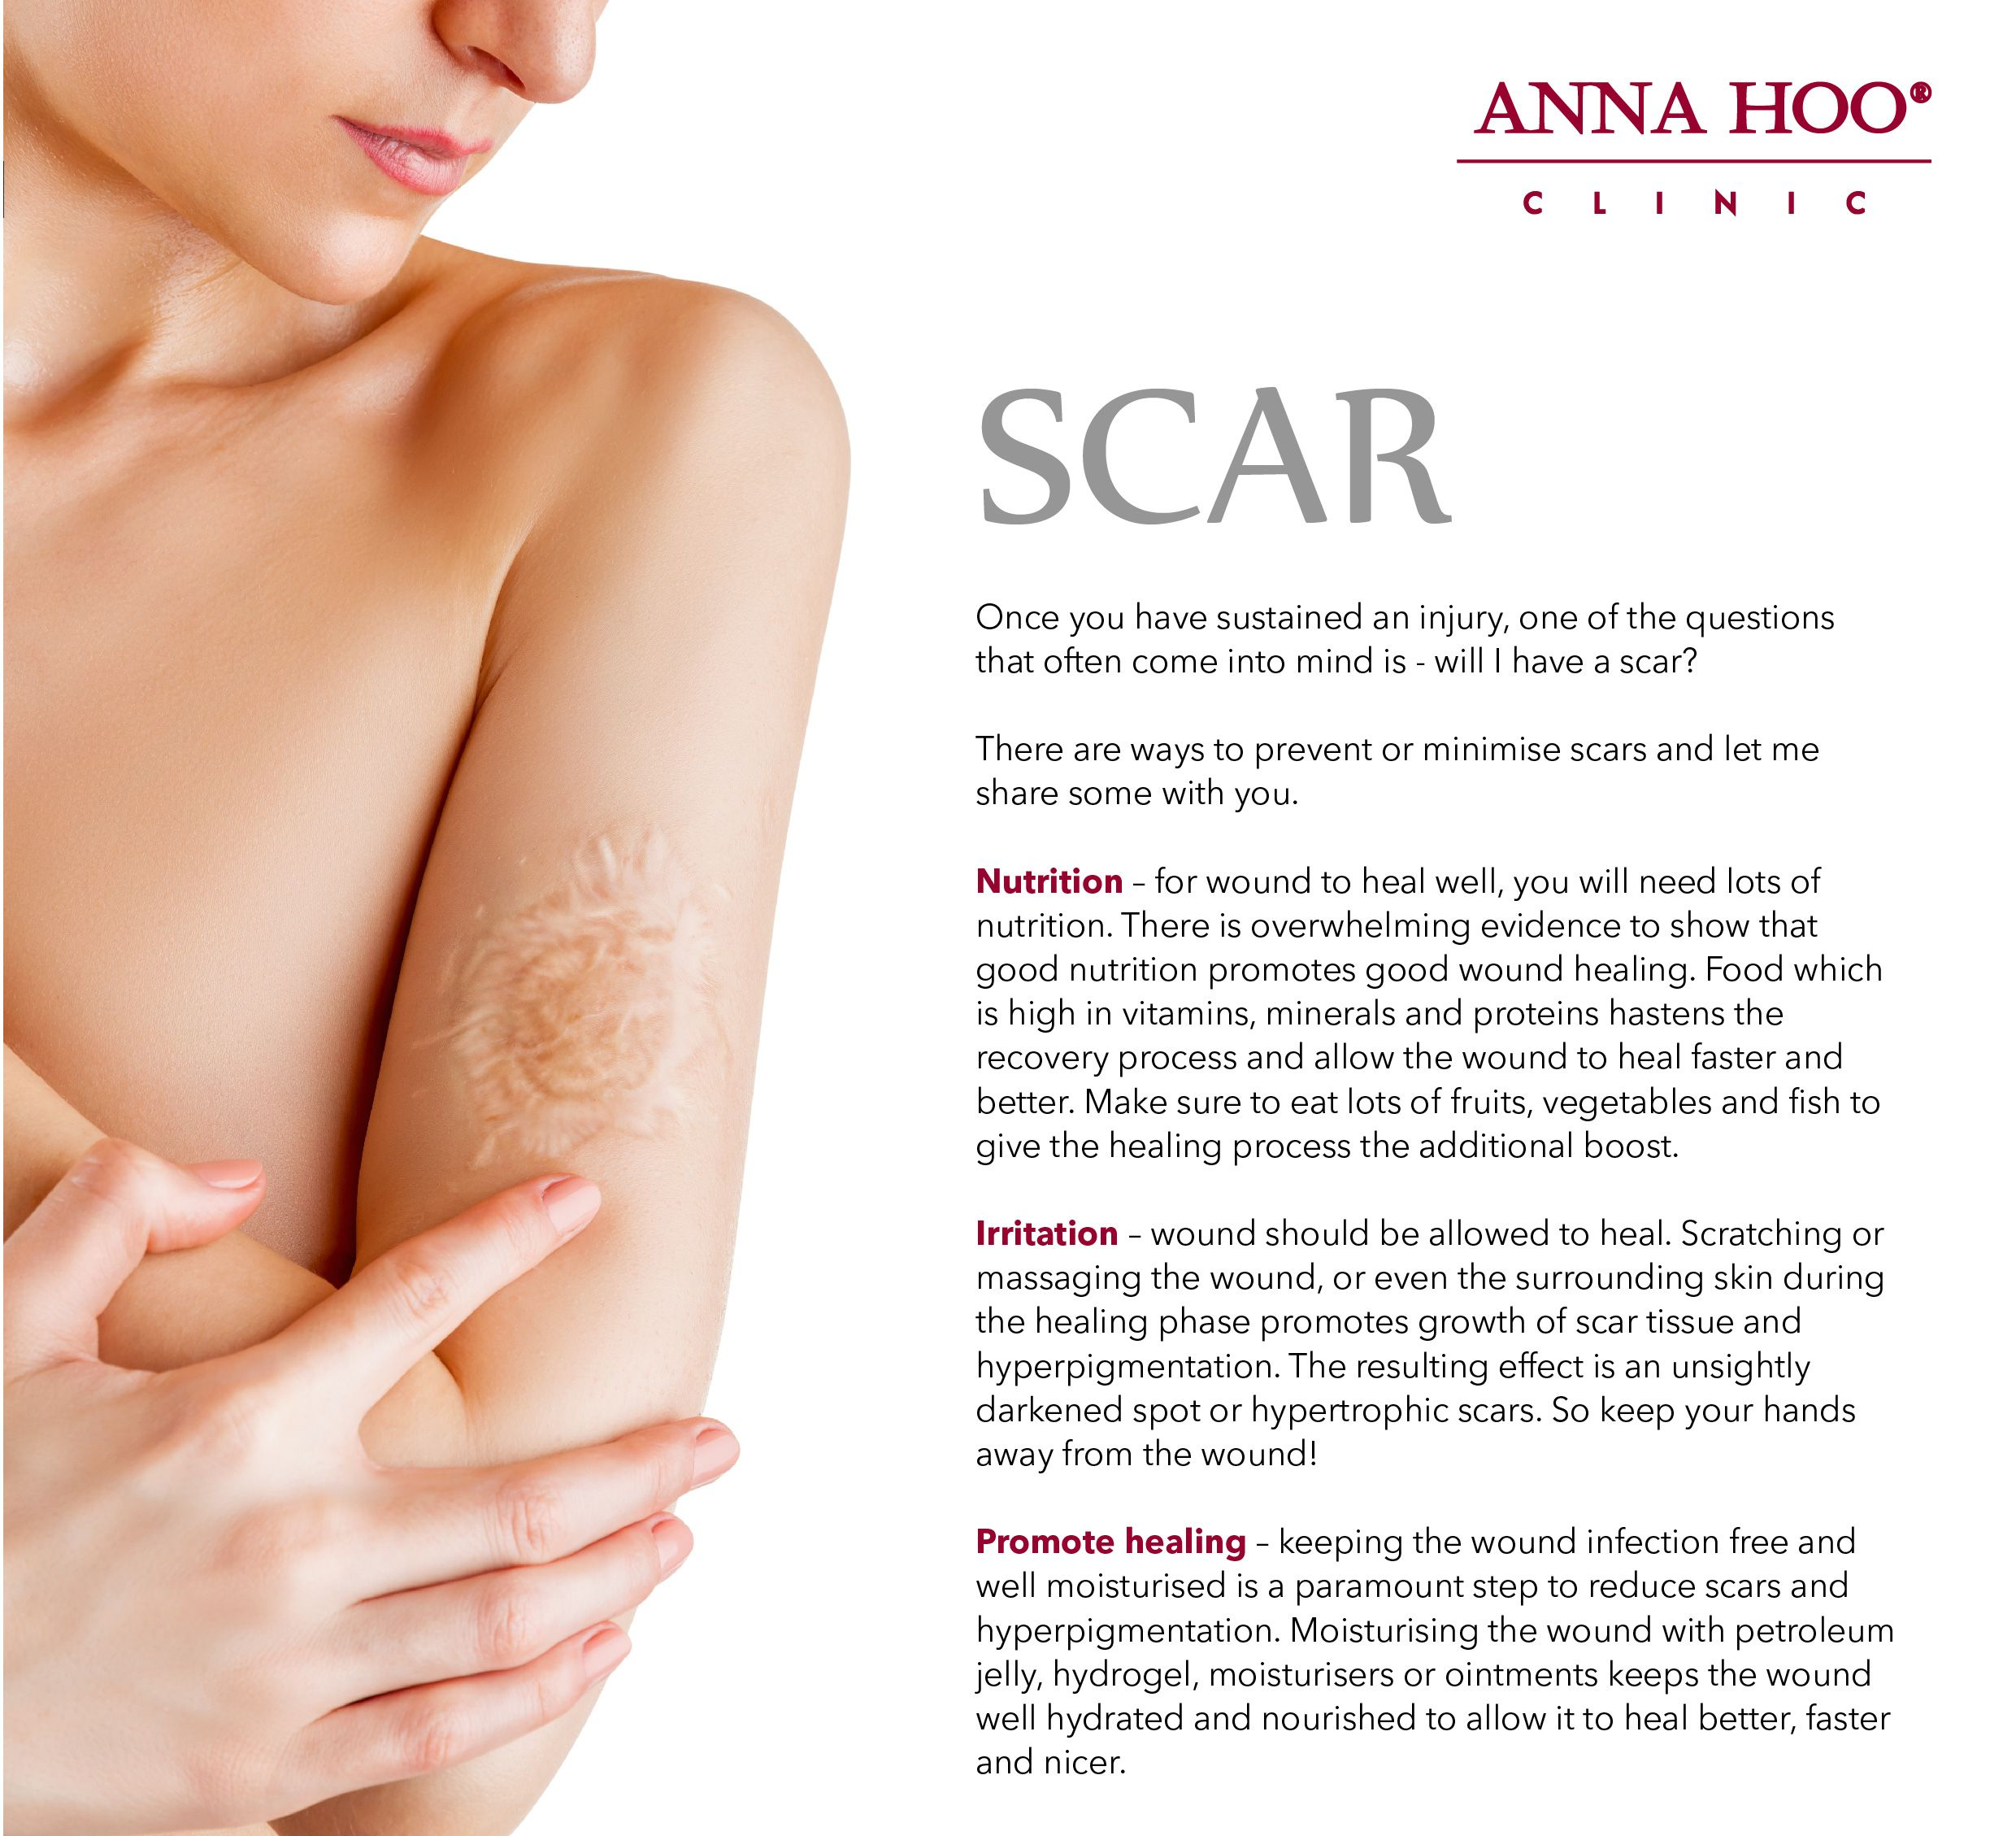 A scar is a permanent patch of skin that grows over a wound  It